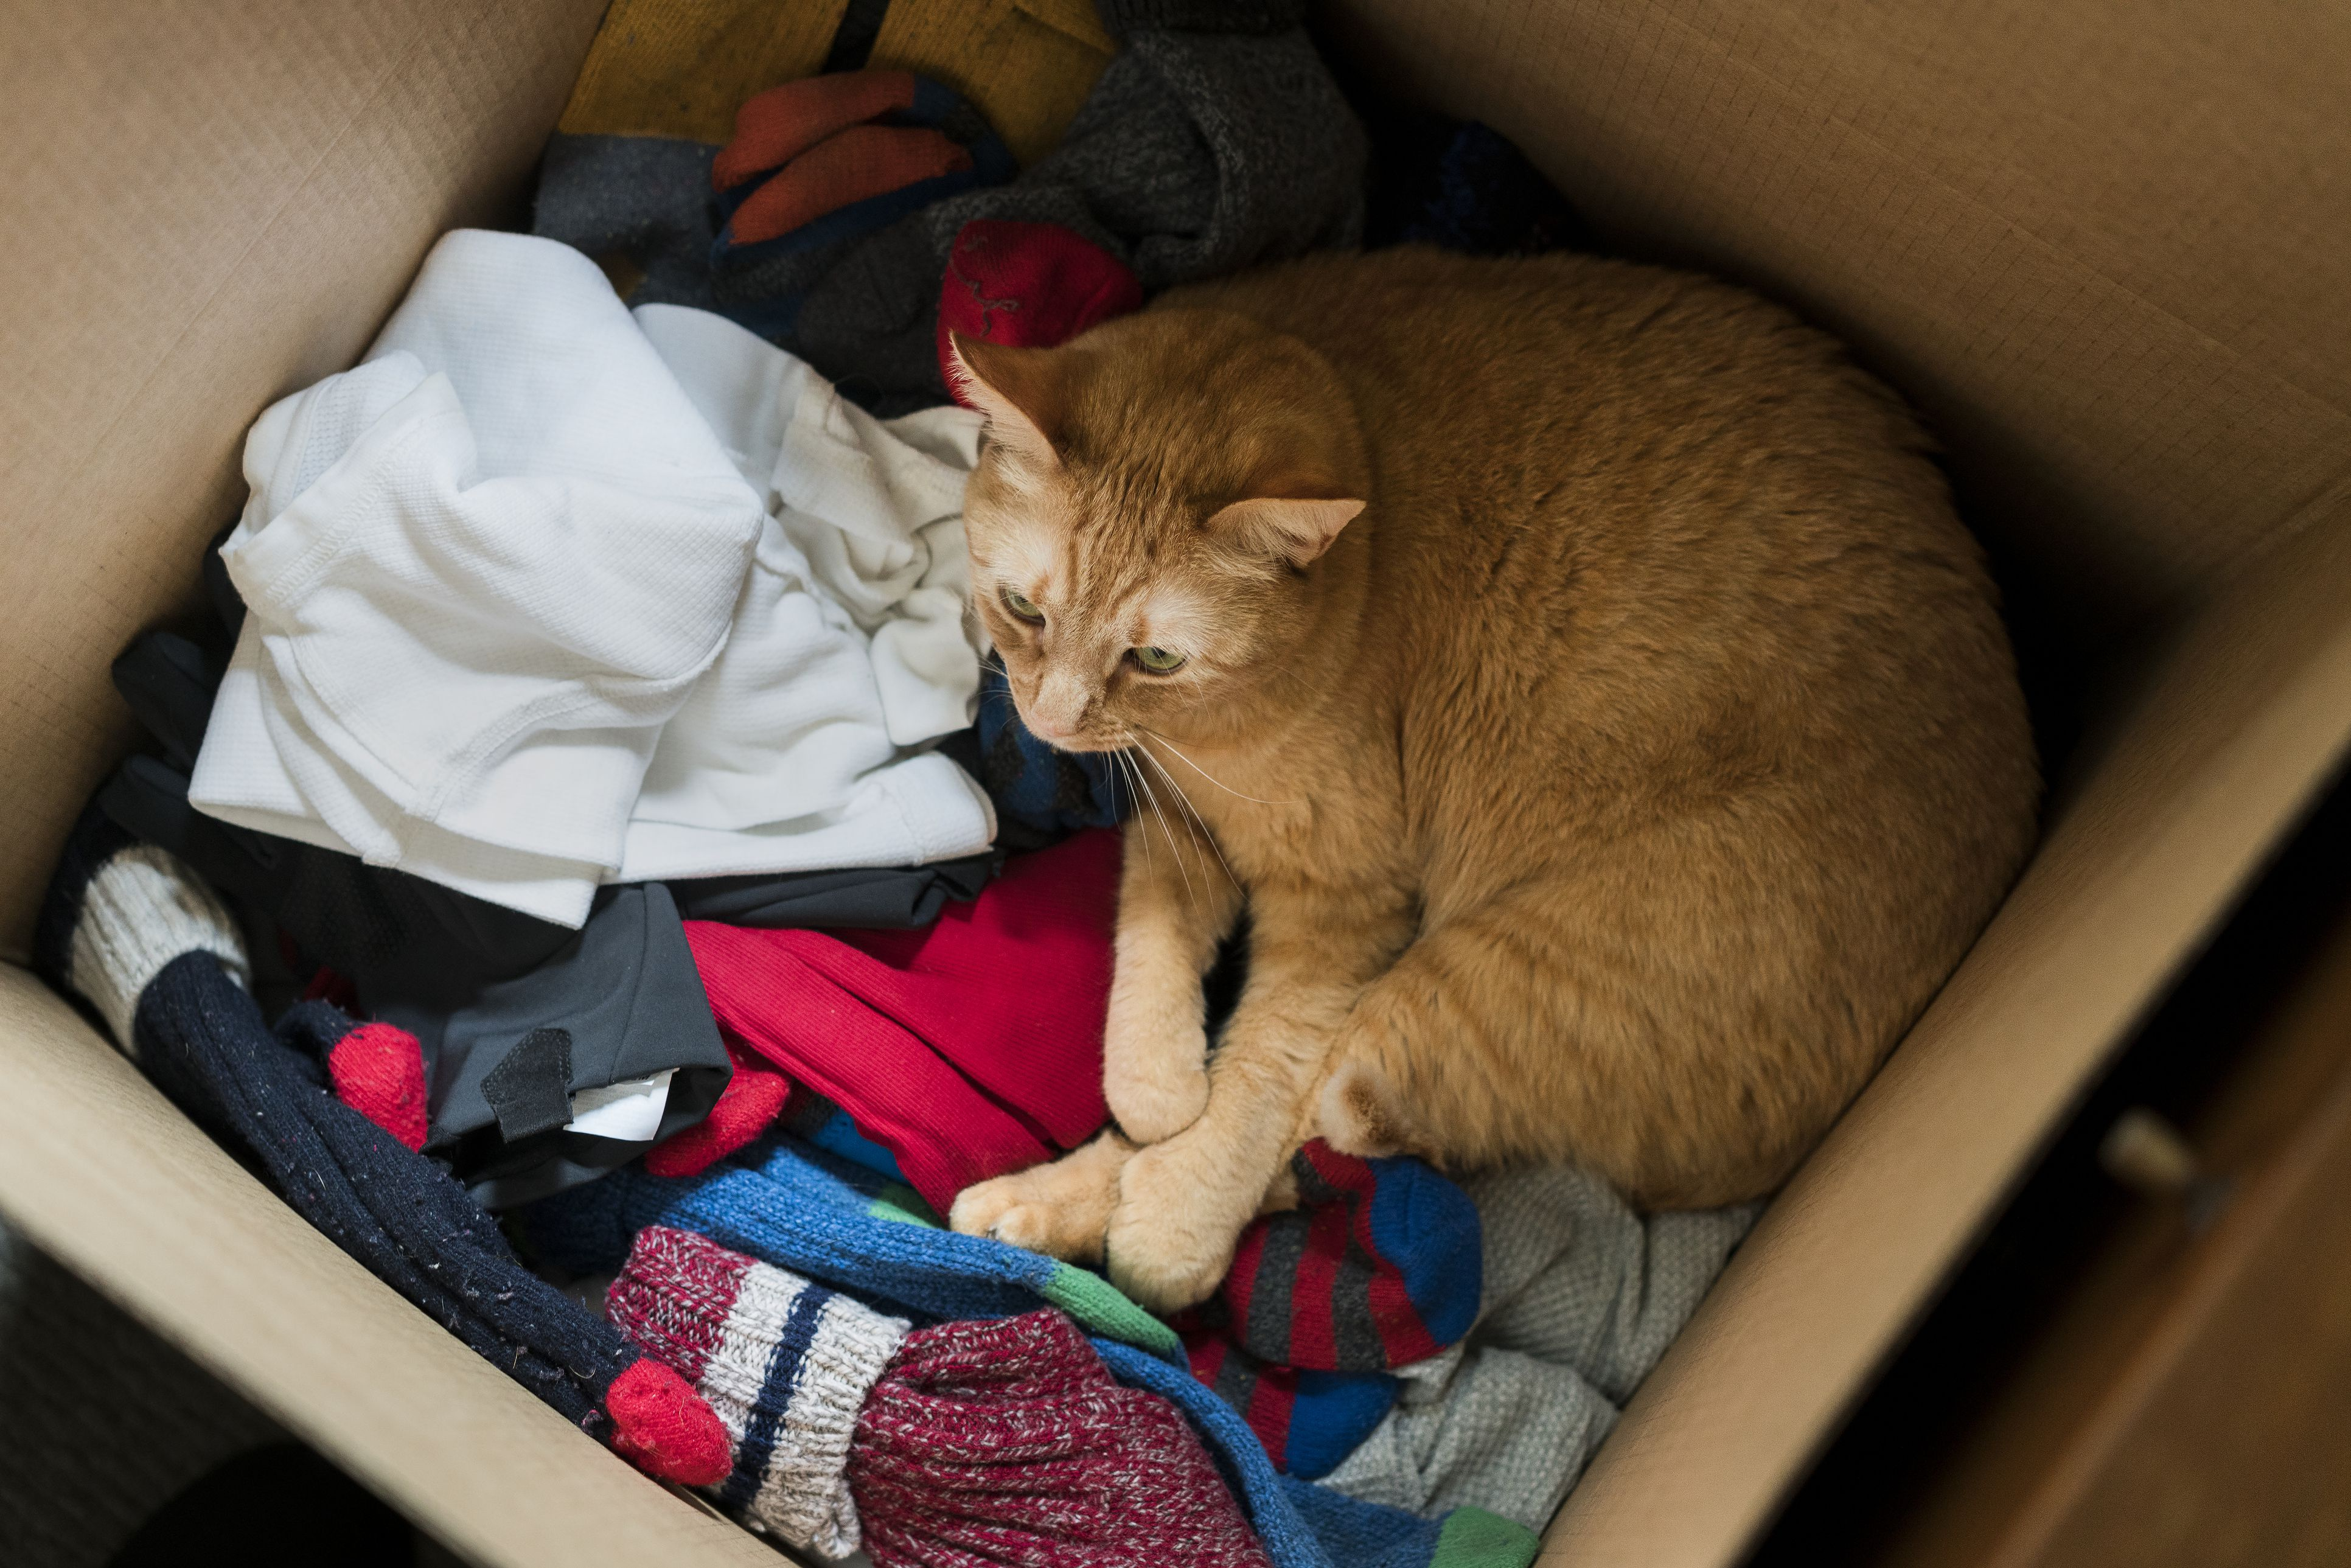 How to Help Cats Adjust After a Stressful Move